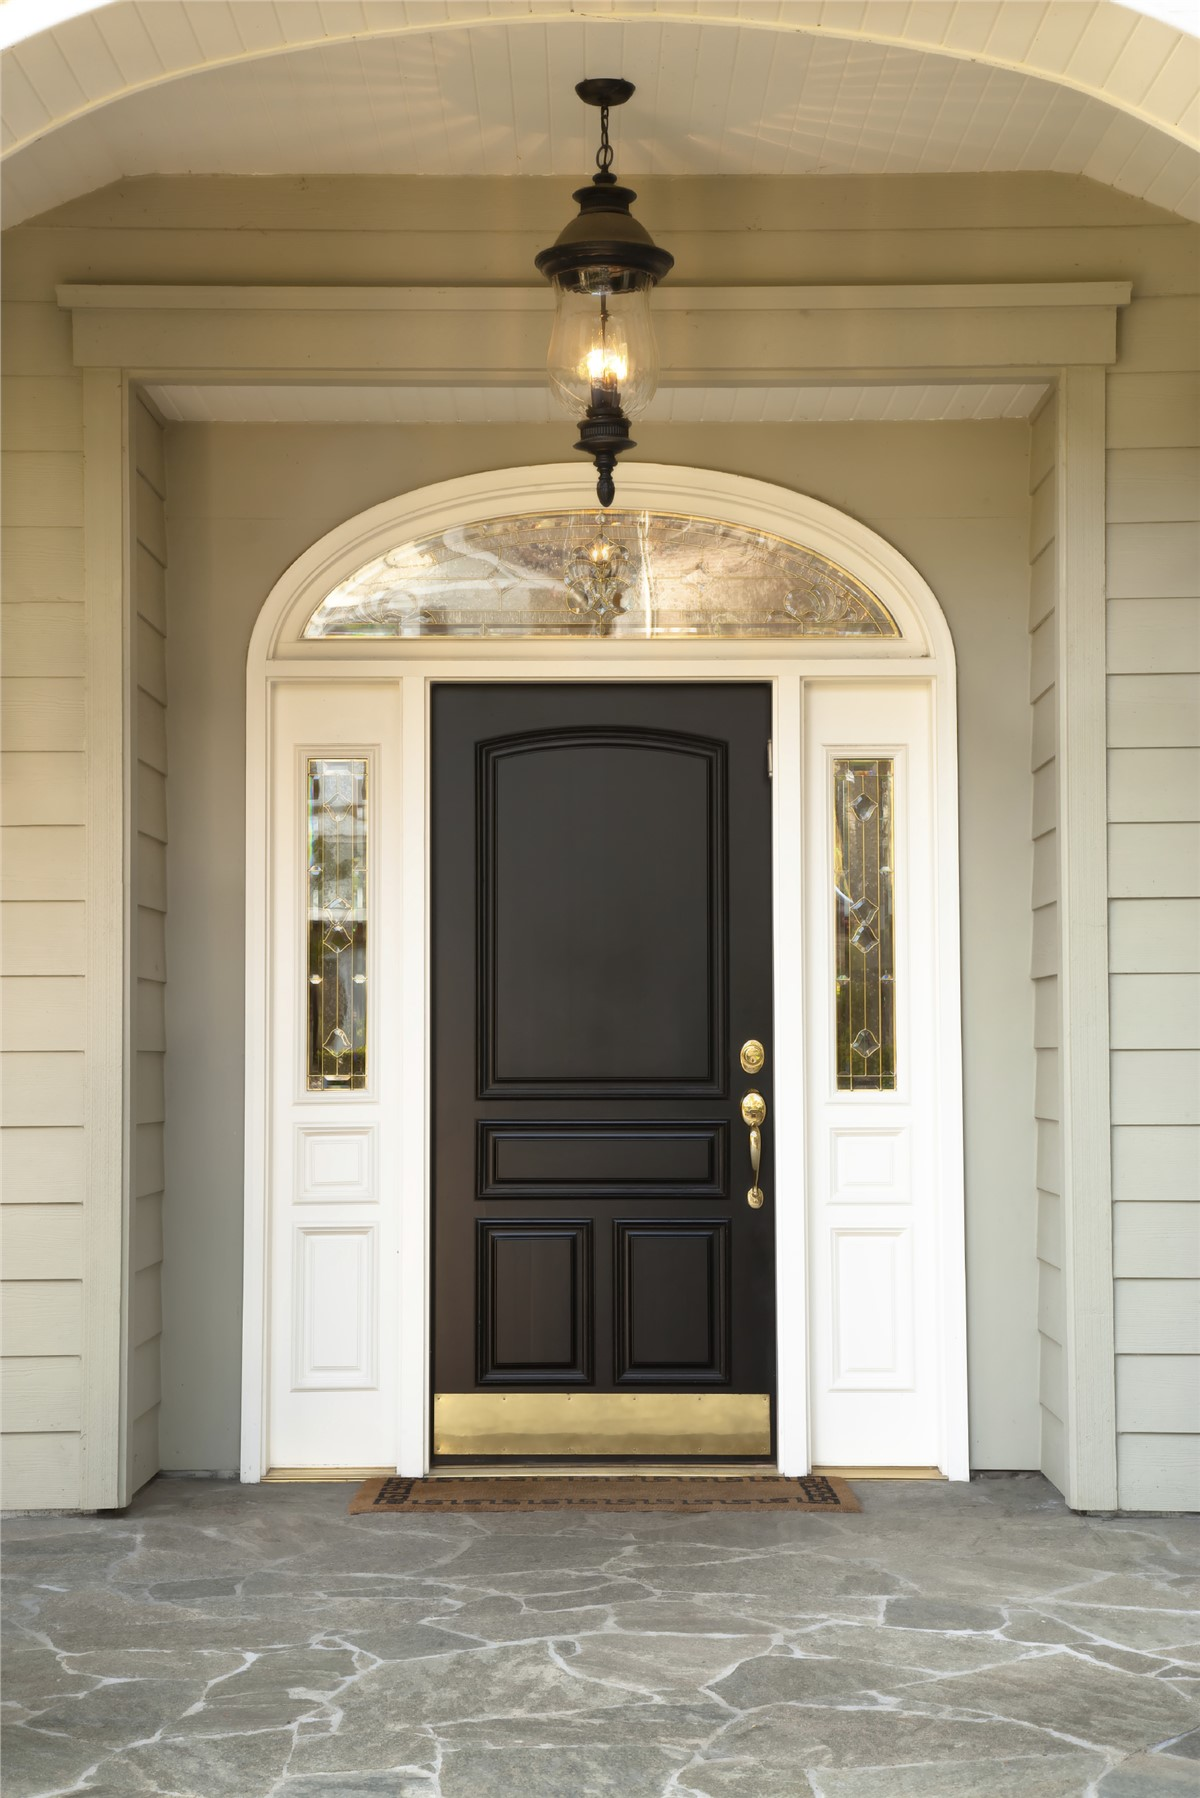 Replace Doors Kansas City Doors Kc Door Installation Alenco